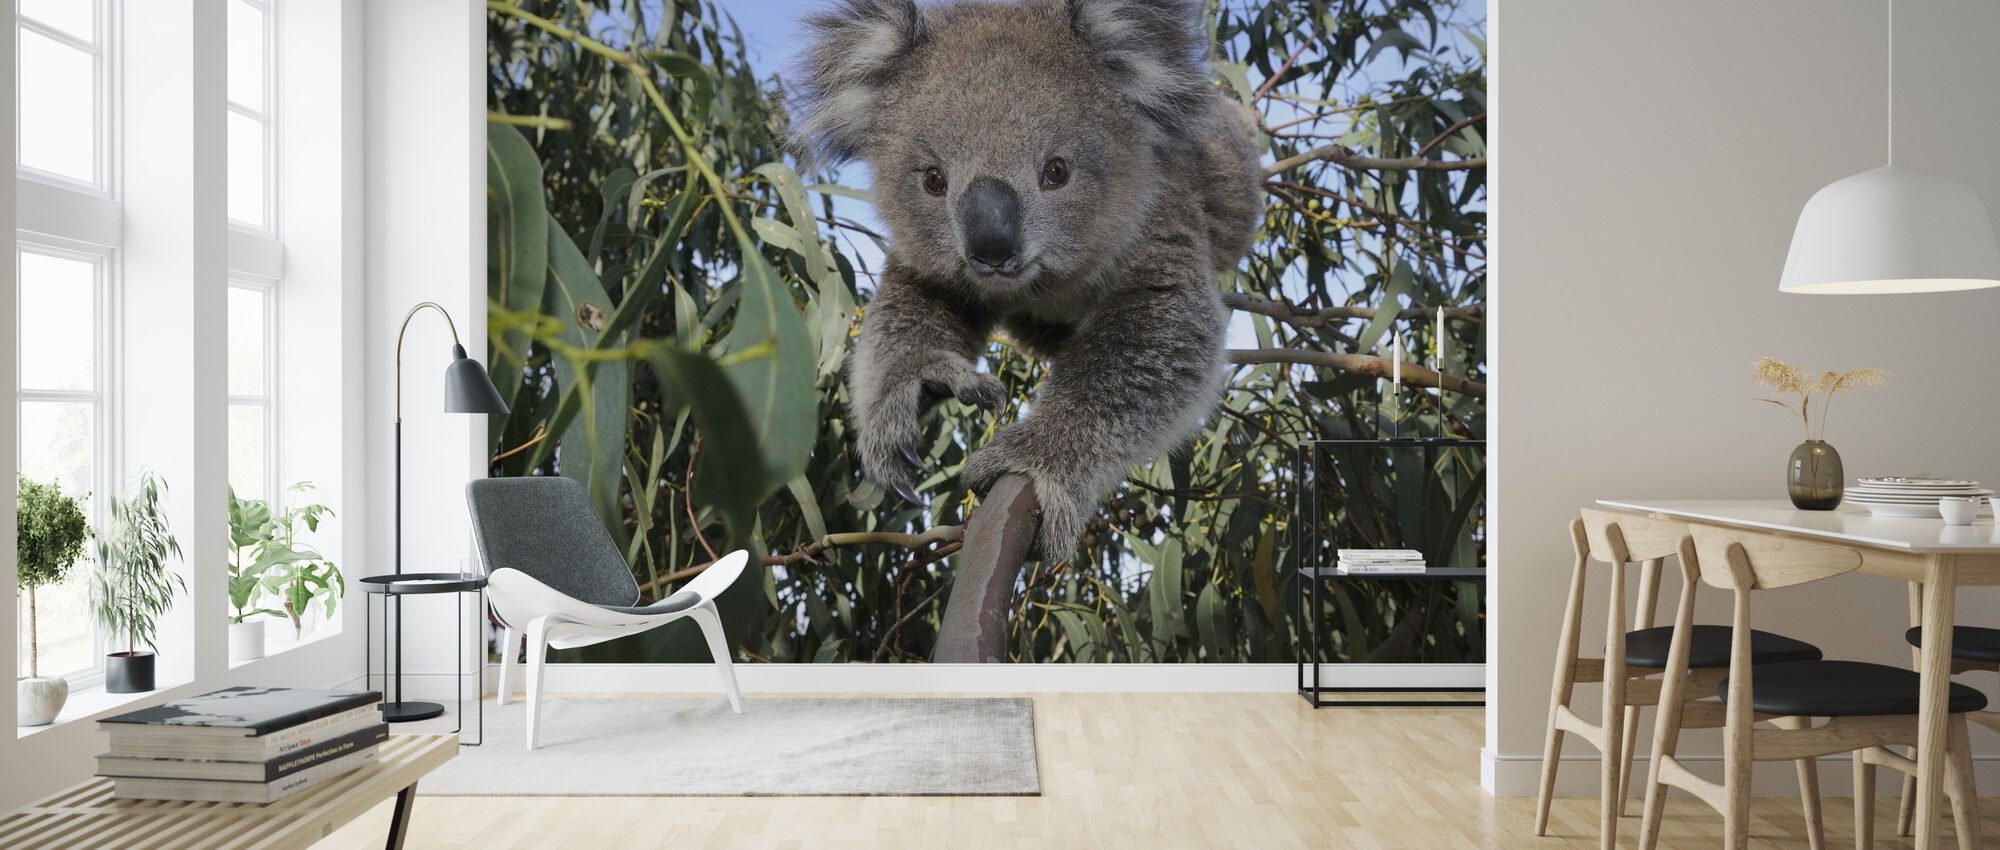 Koala - Wallpaper - Living Room